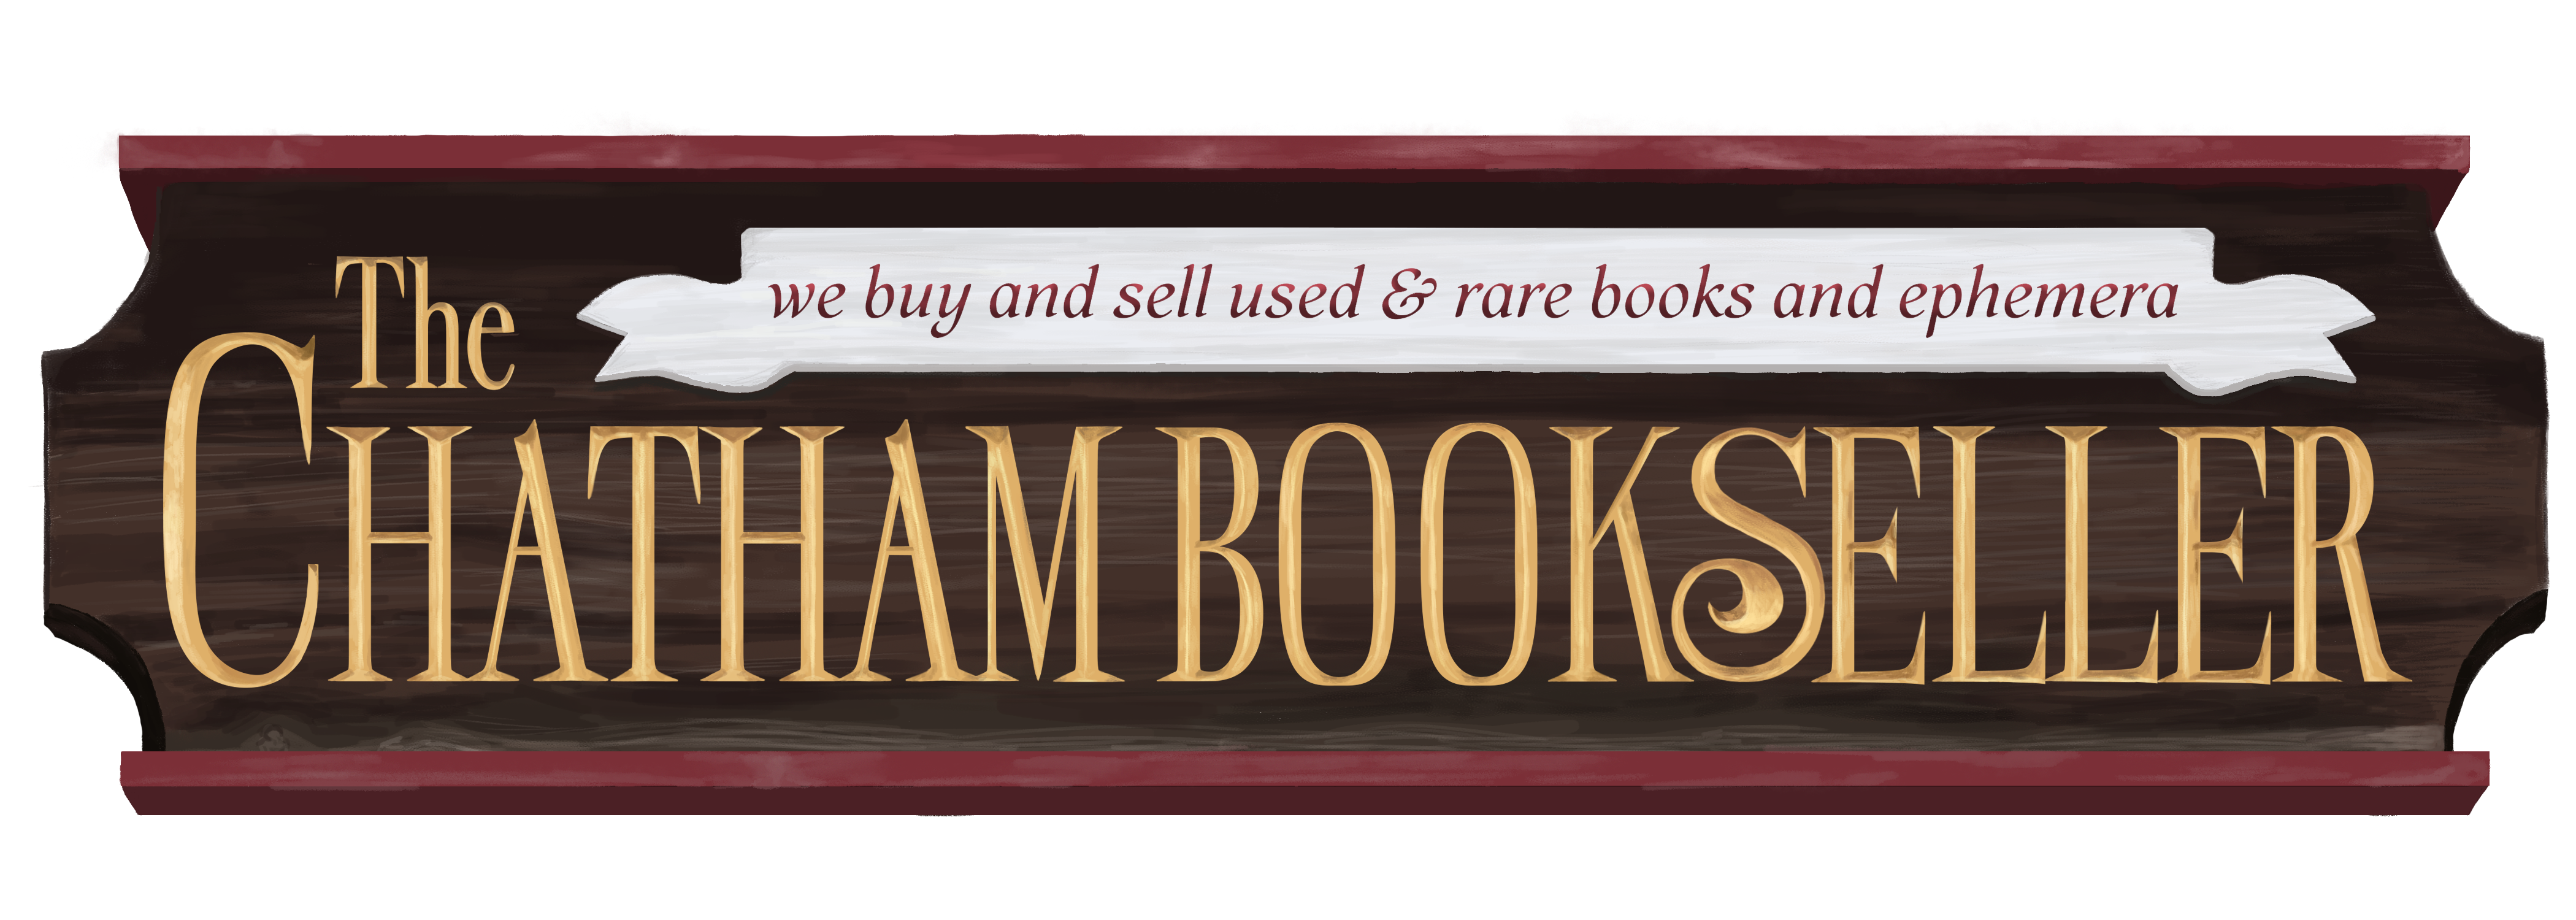 chathambooksellerwebheader.png.png